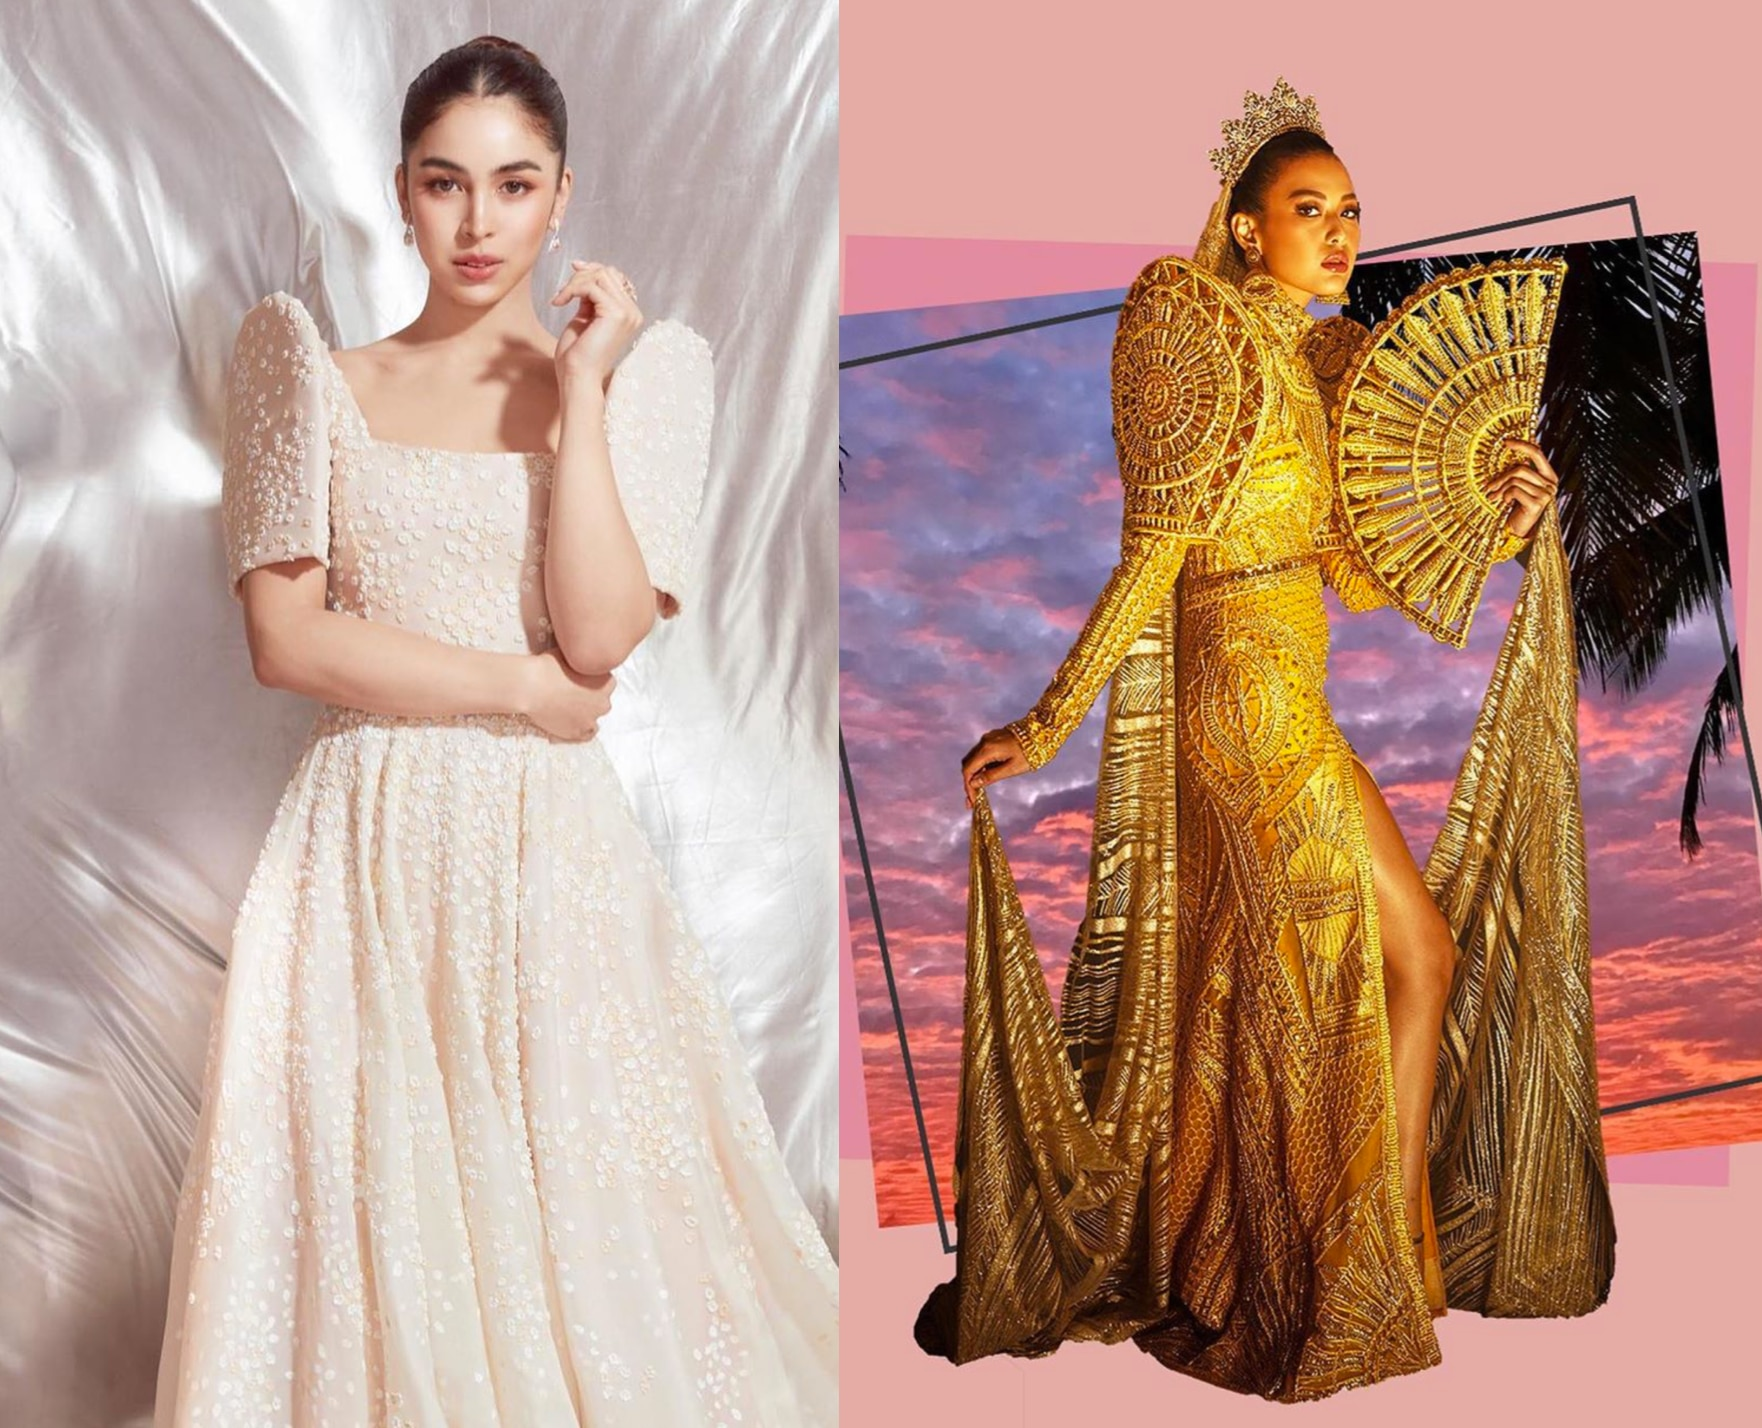 5 Top Designers And Their Best Terno Looks Yet